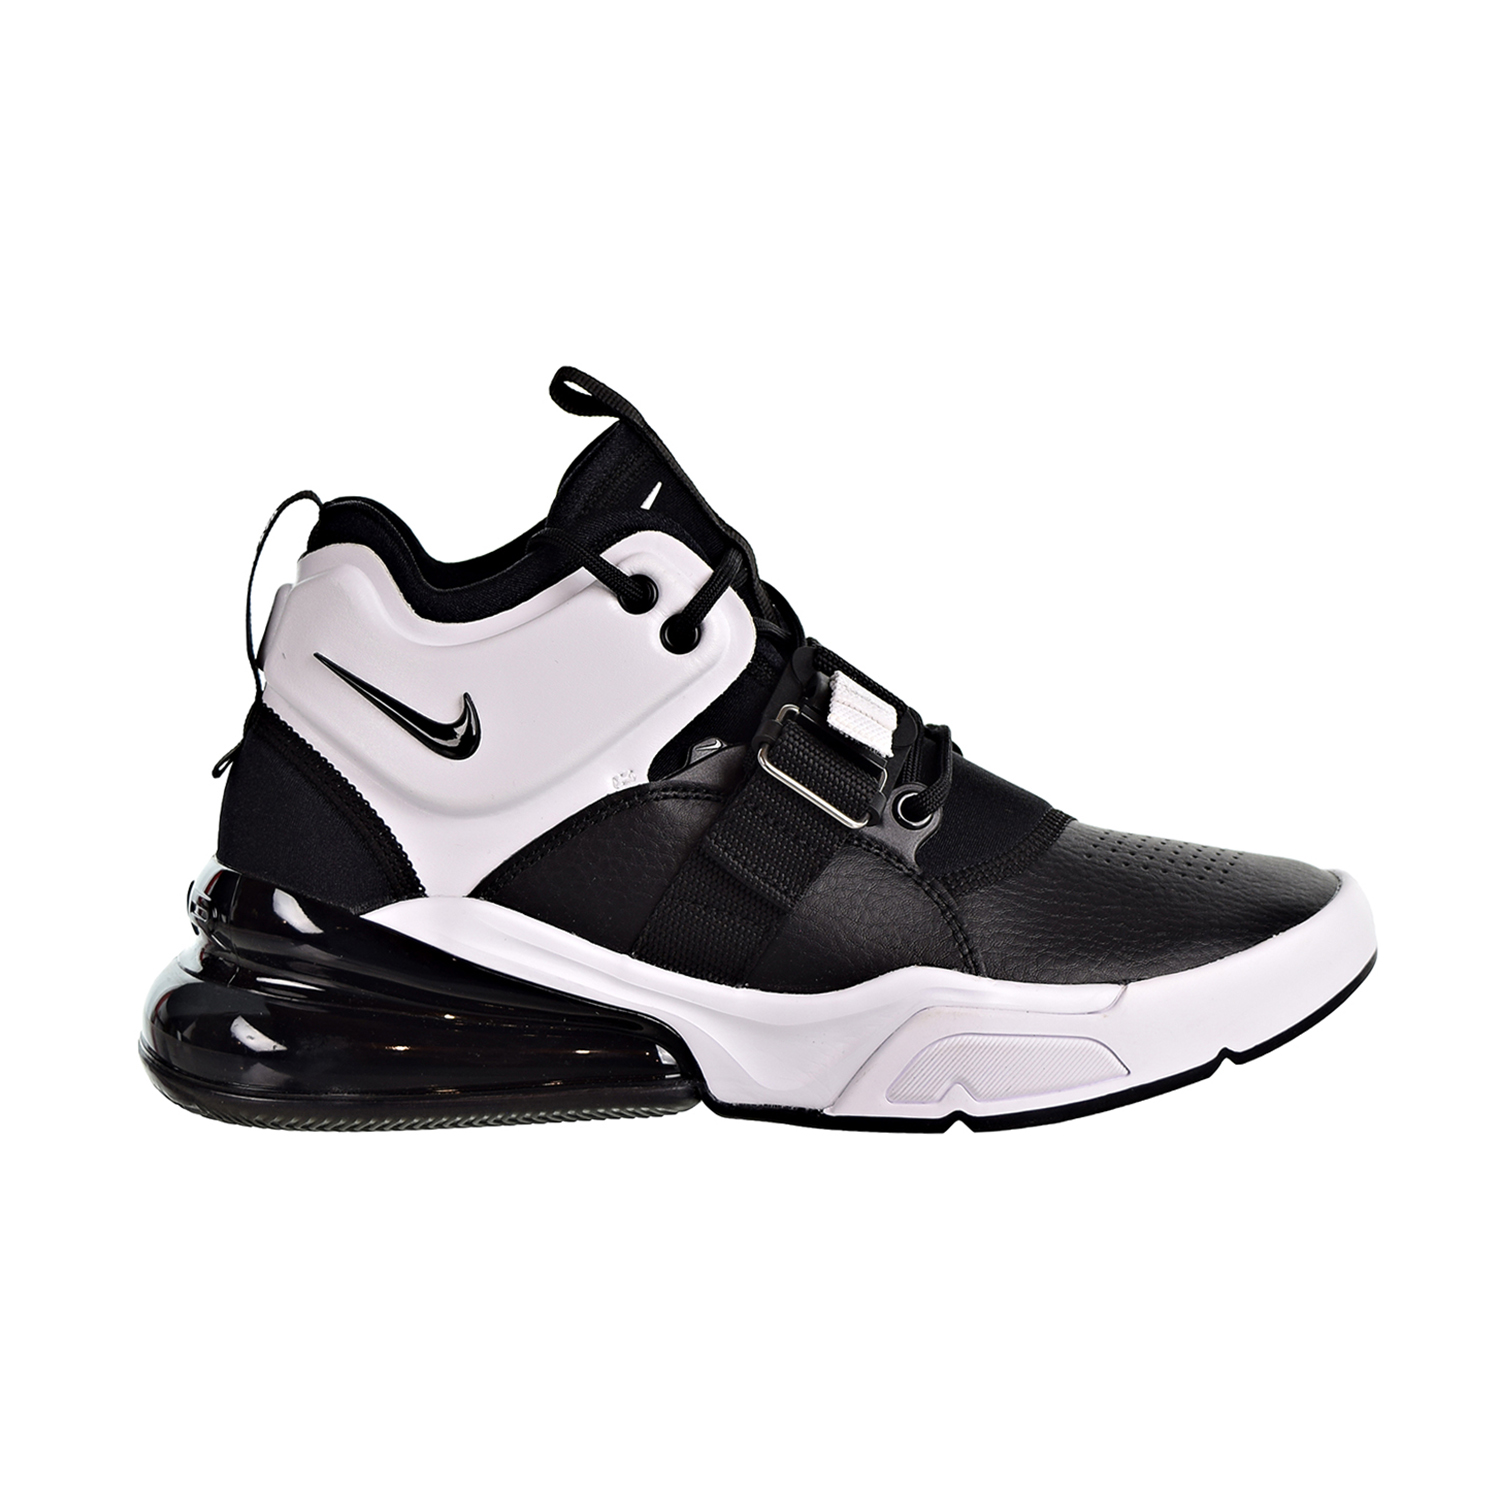 Details about Nike Air Force 270 Big Kids  Shoes Black White Anthracite  AJ8208-001 1beff20bc